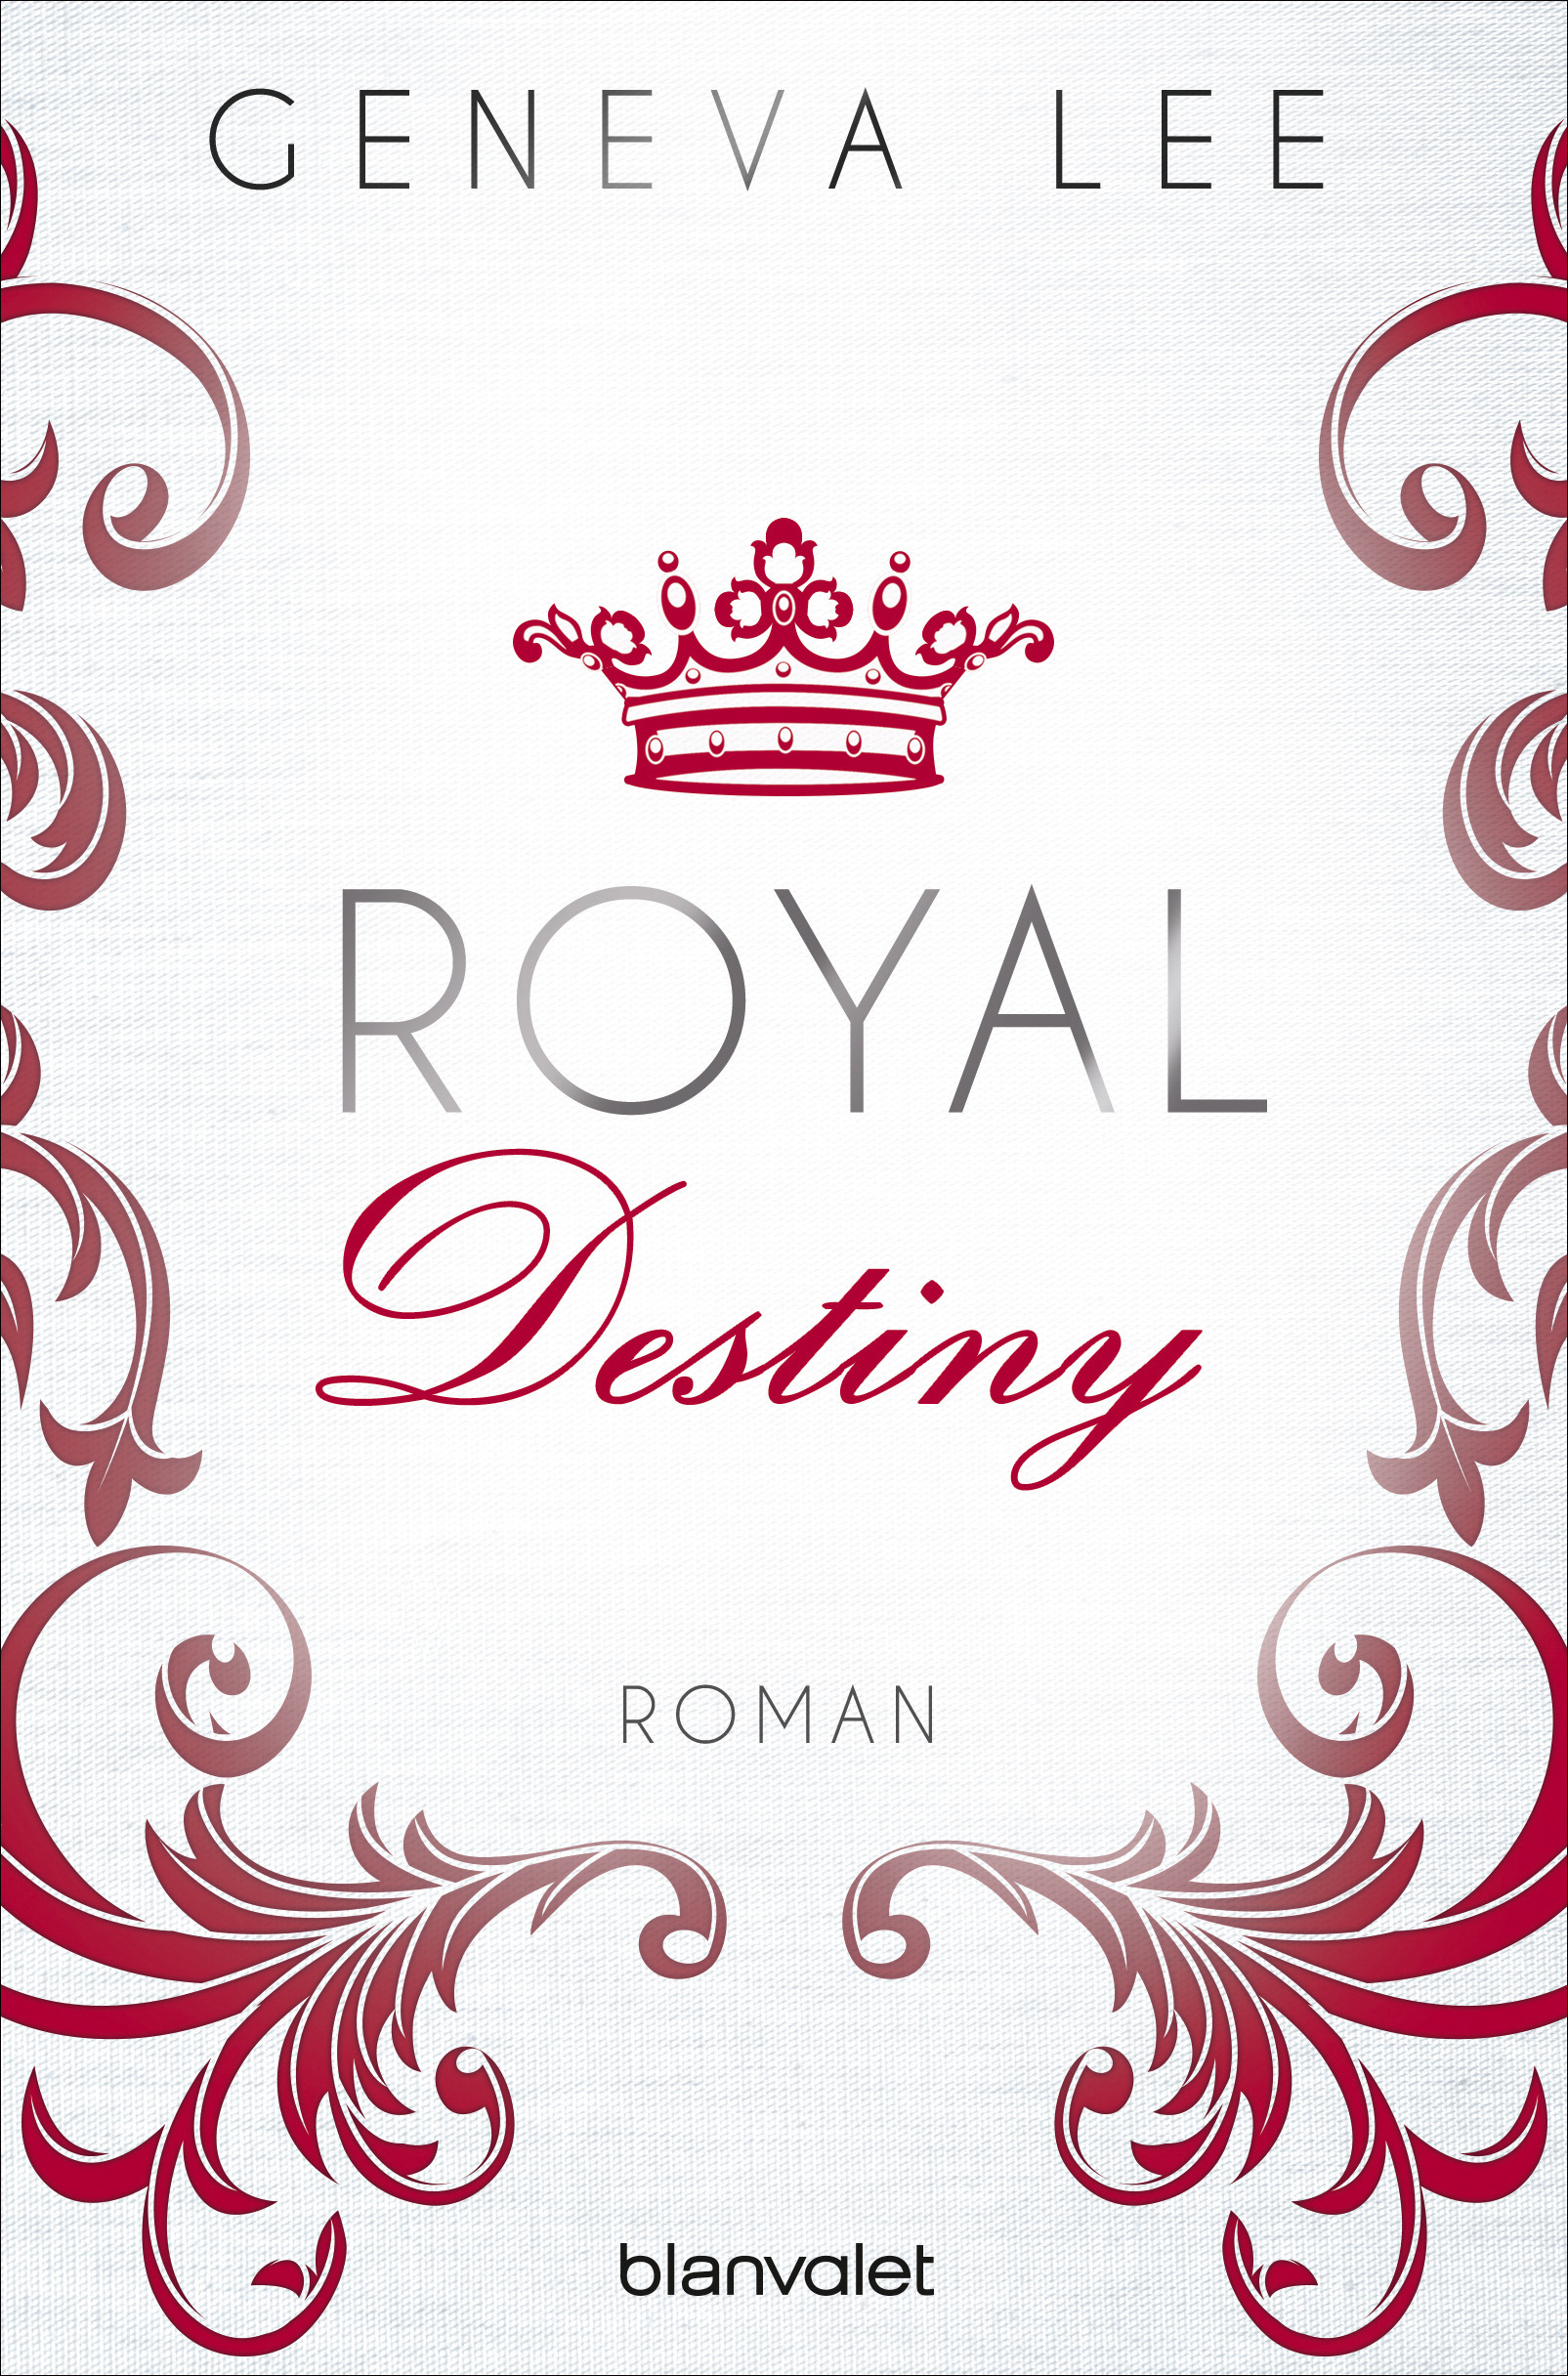 Lee_GRoyal_Destiny_Royals_Saga_7_v3_172826.jpg